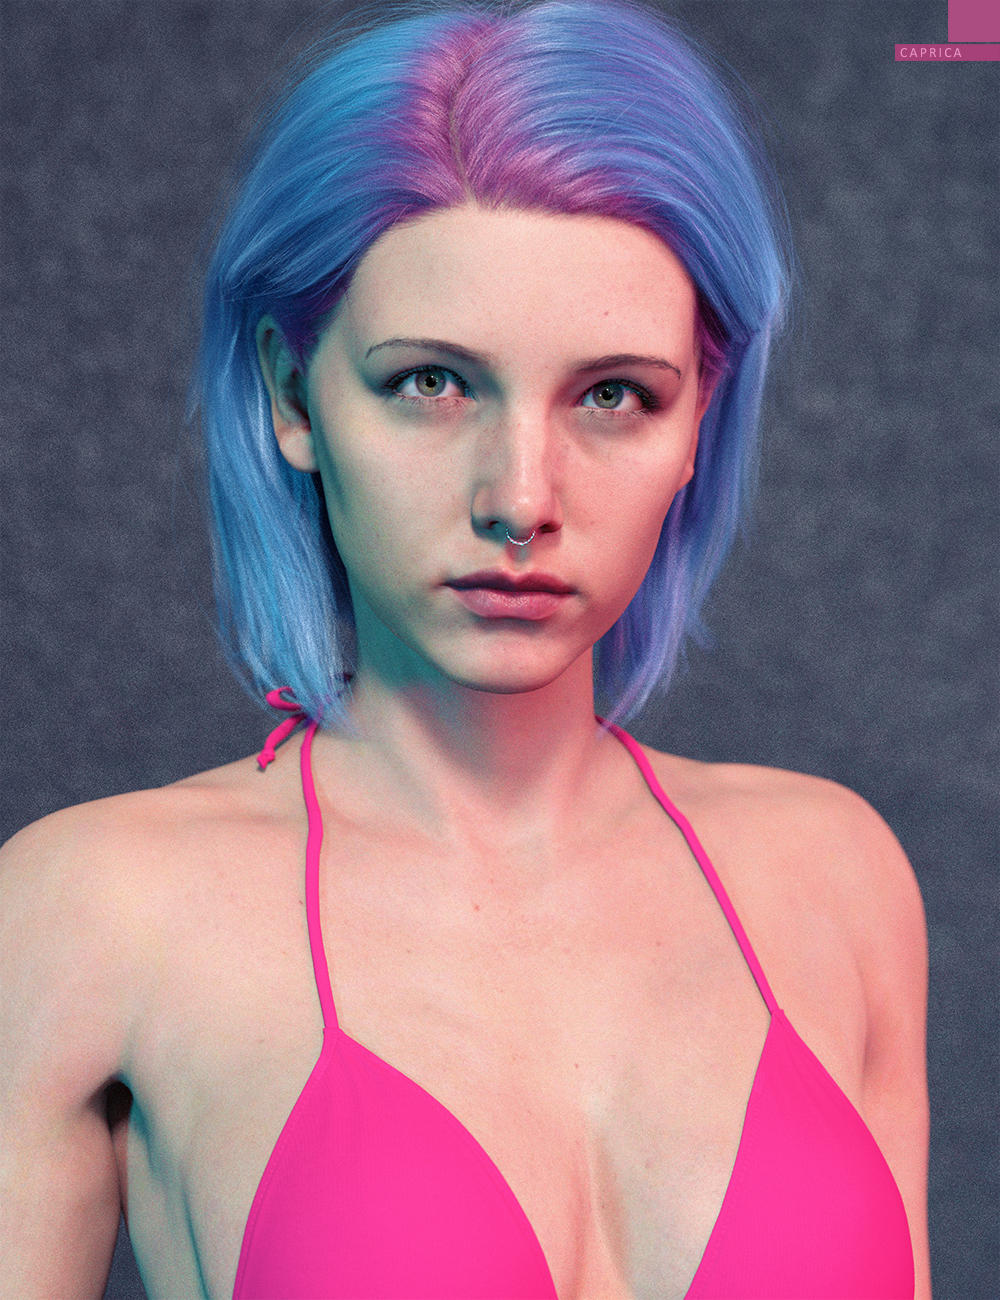 Caprica HD with HD Expressions for Genesis 8.1 Female by: bluejaunte, 3D Models by Daz 3D